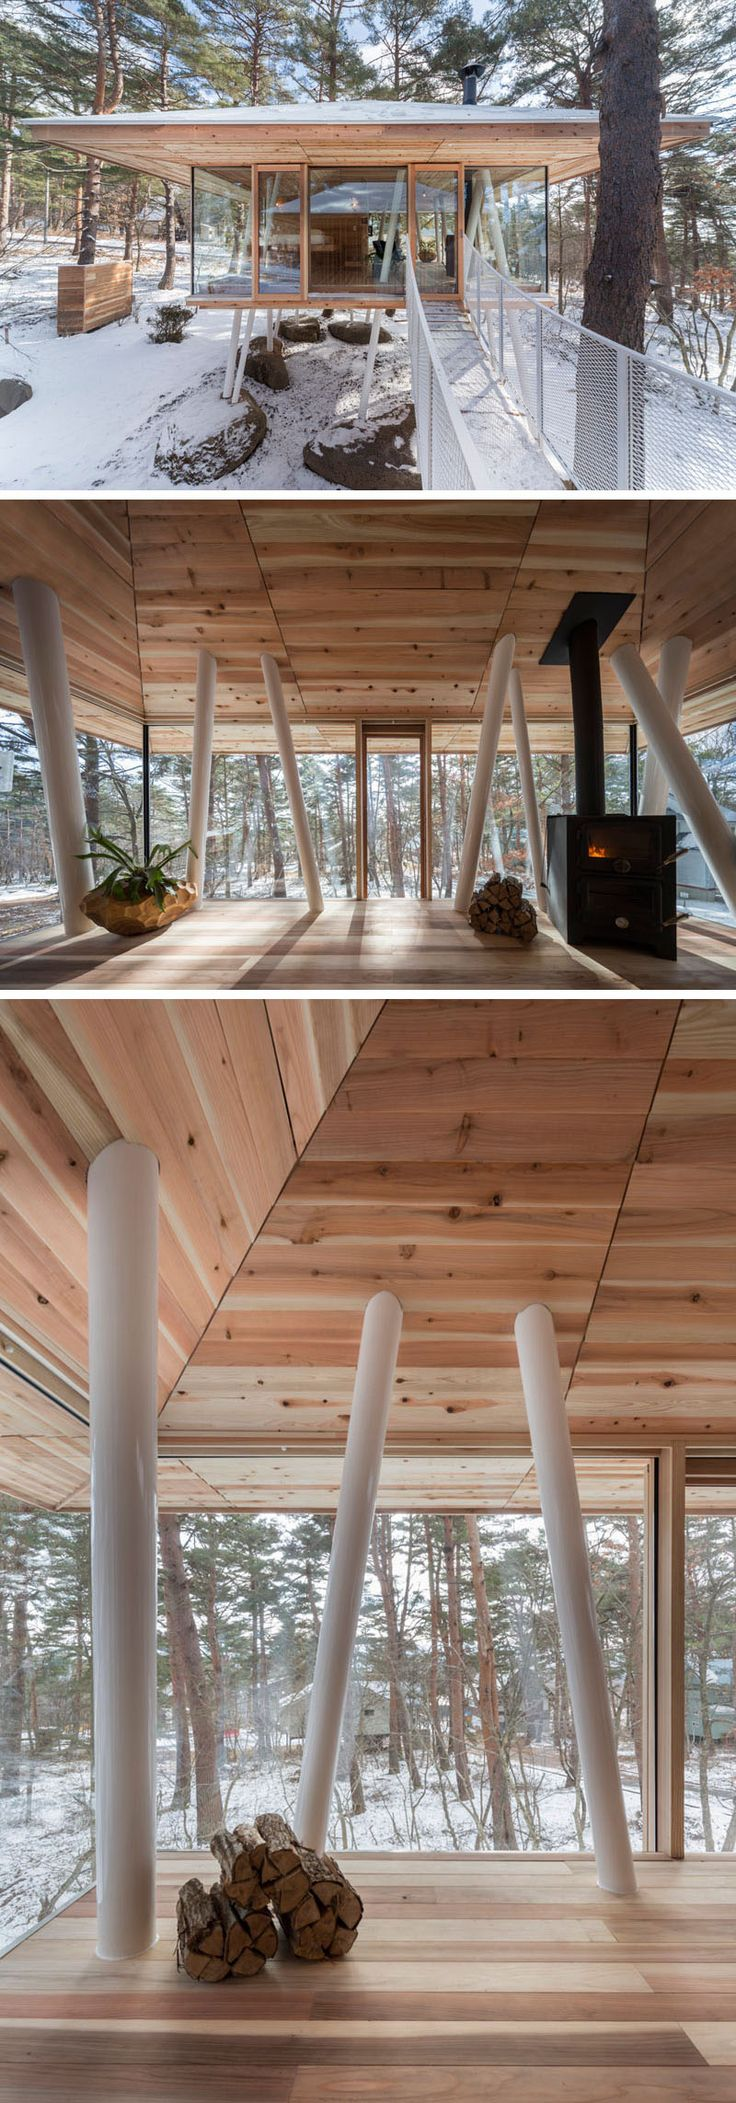 Architecture firm Life Style Koubou, have designed the 'One Year Project', a vacation home in Japan that features two separate buildings positioned on stilts and connected by a bridge. #Architecture #ModernArchitecture #Stilts #VacationHome #JapaneseArchitecture #InteriorDesign #Wood